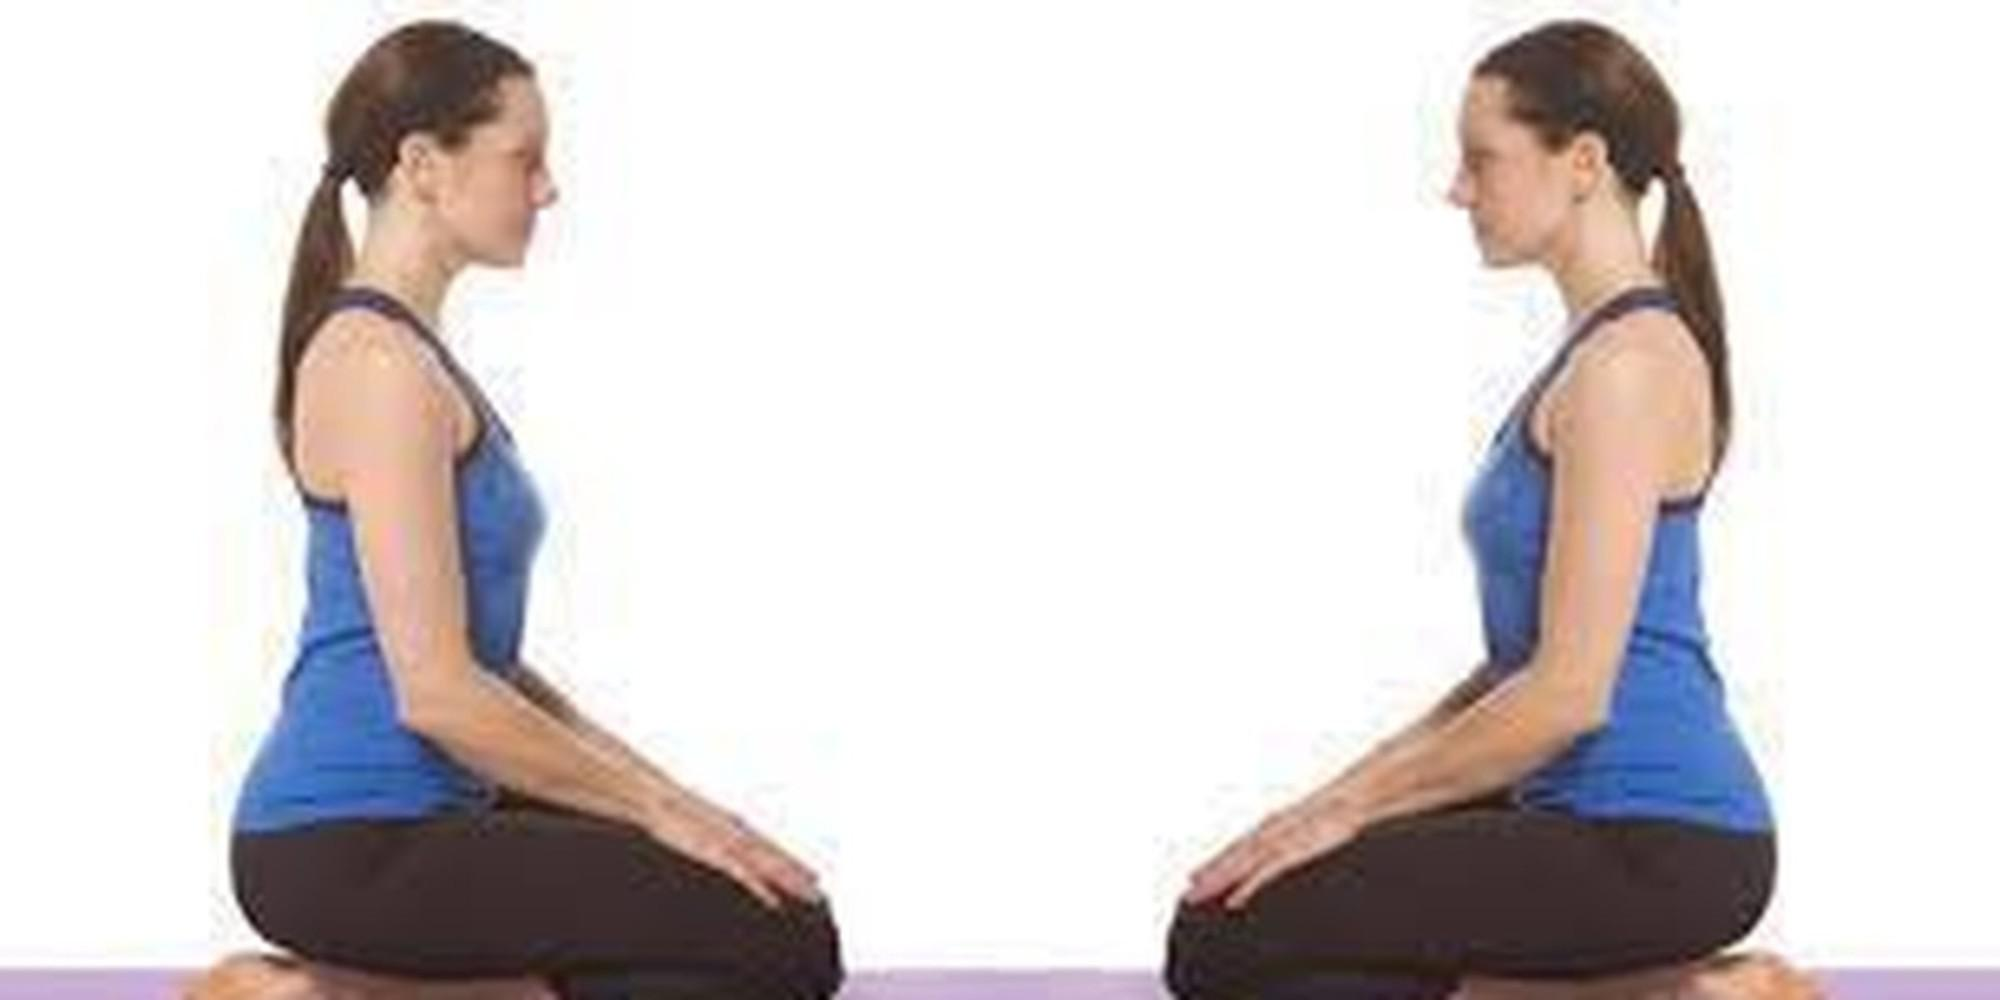 Hair fall control with yoga recommend